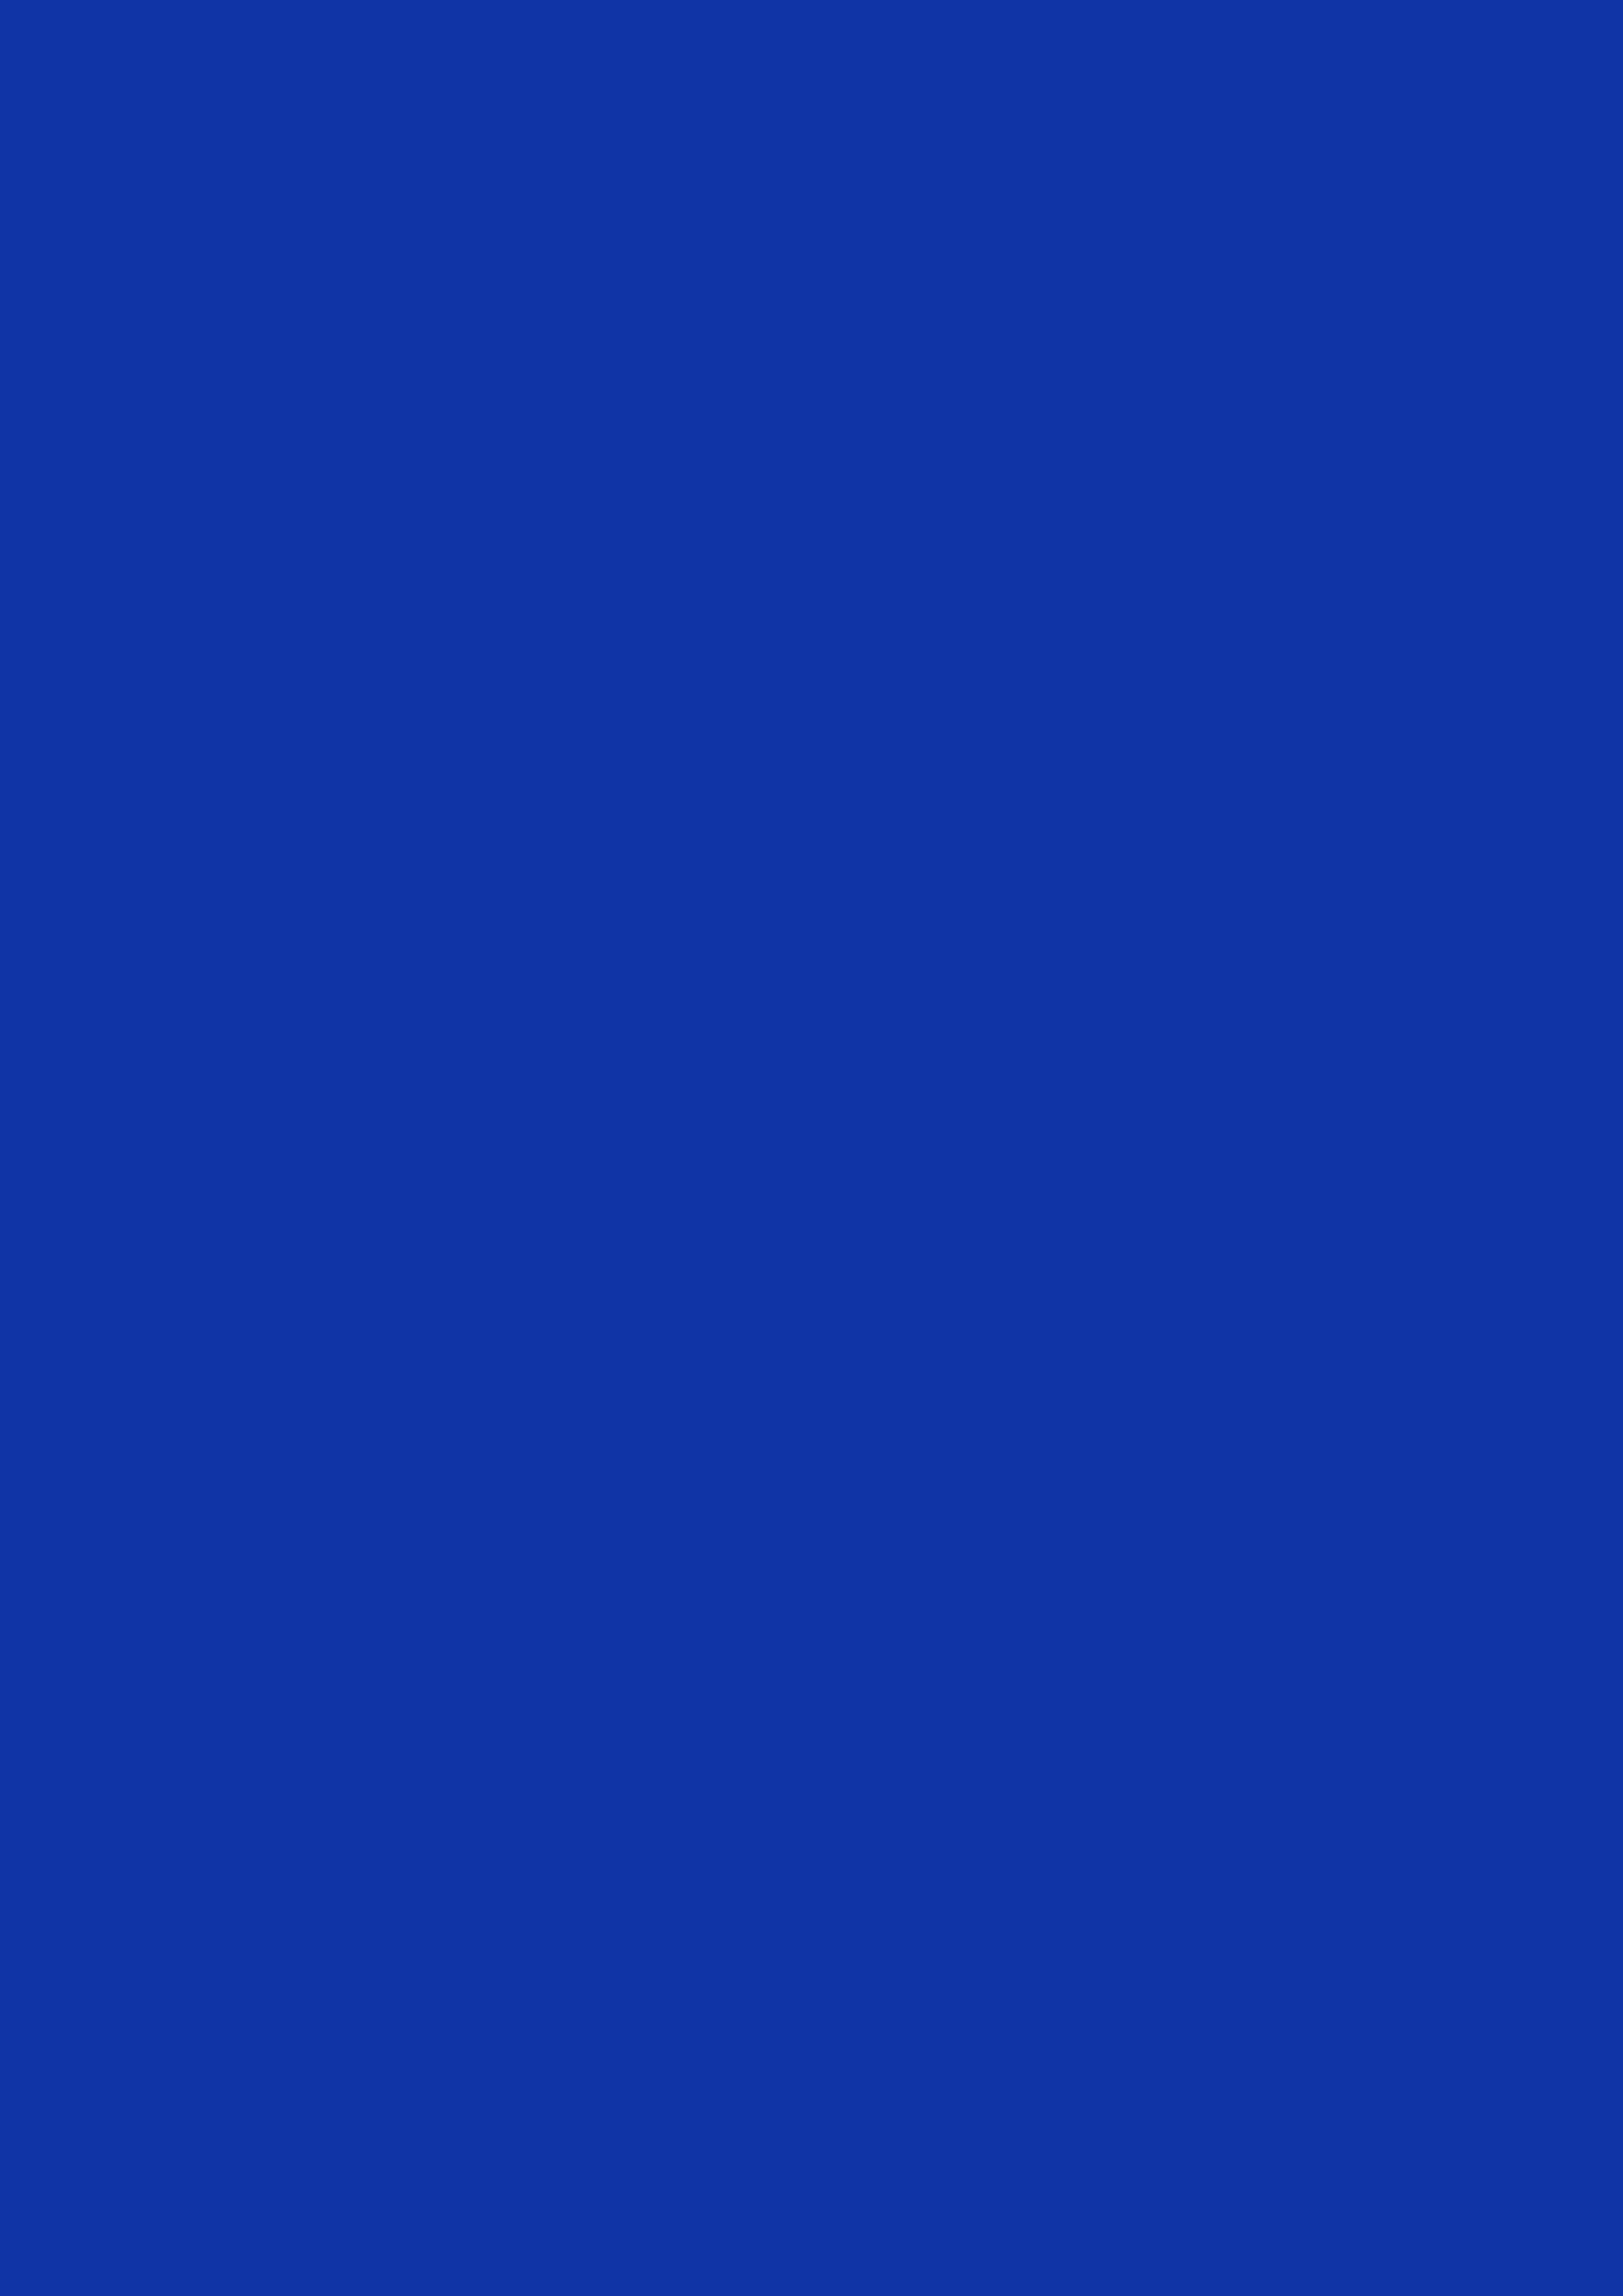 2480x3508 Egyptian Blue Solid Color Background